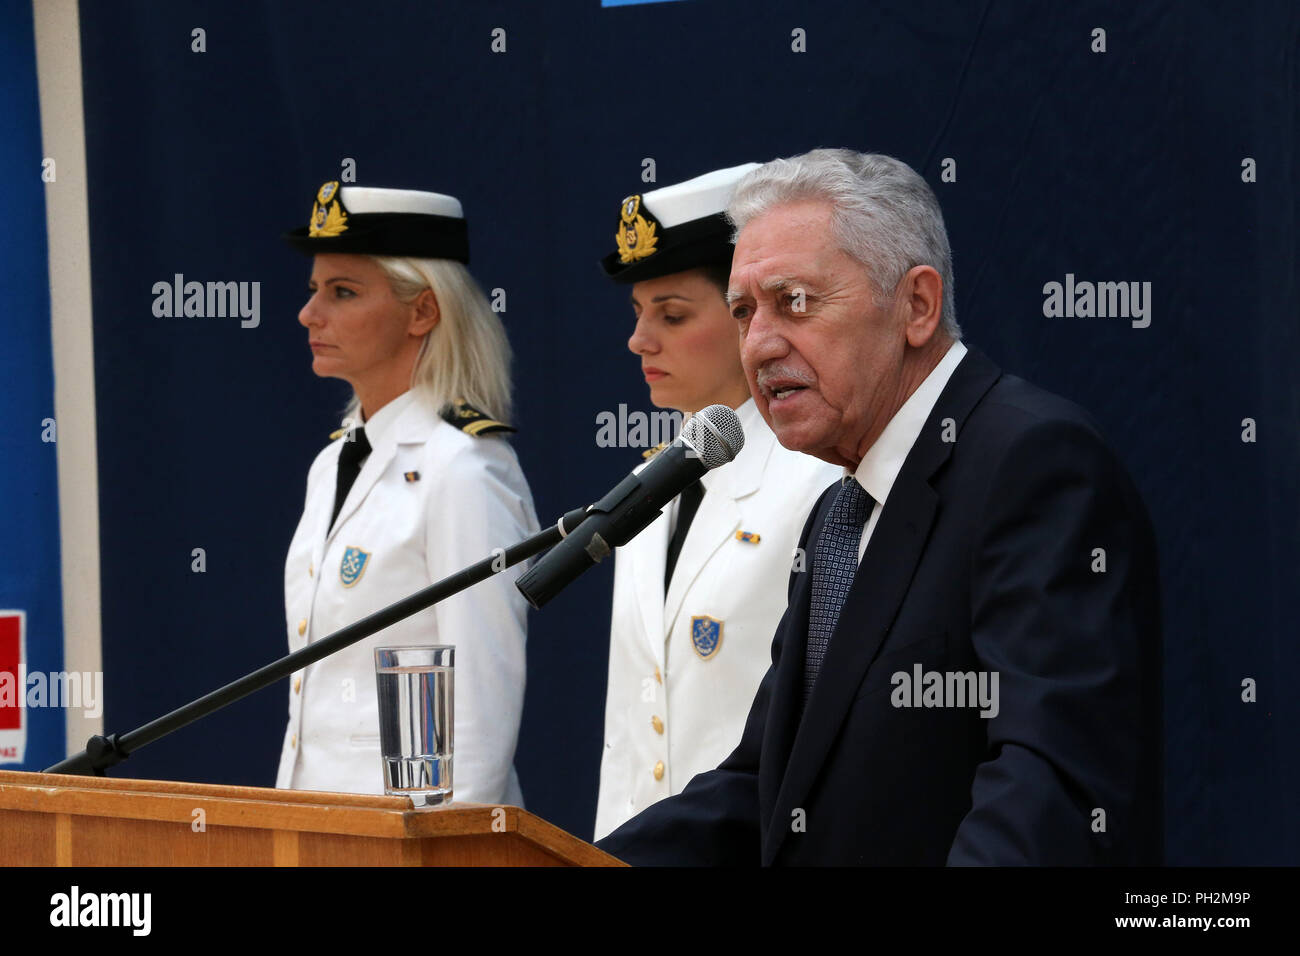 Piraeus, Greece. 30th Aug, 2018. Greece's new Shipping Minister Fotis Kouvelis delivers speech during the handover ceremony of the Ministry in Piraeus, Greece, on Aug. 30, 2018. Credit: Marios Lolos/Xinhua/Alamy Live News - Stock Image